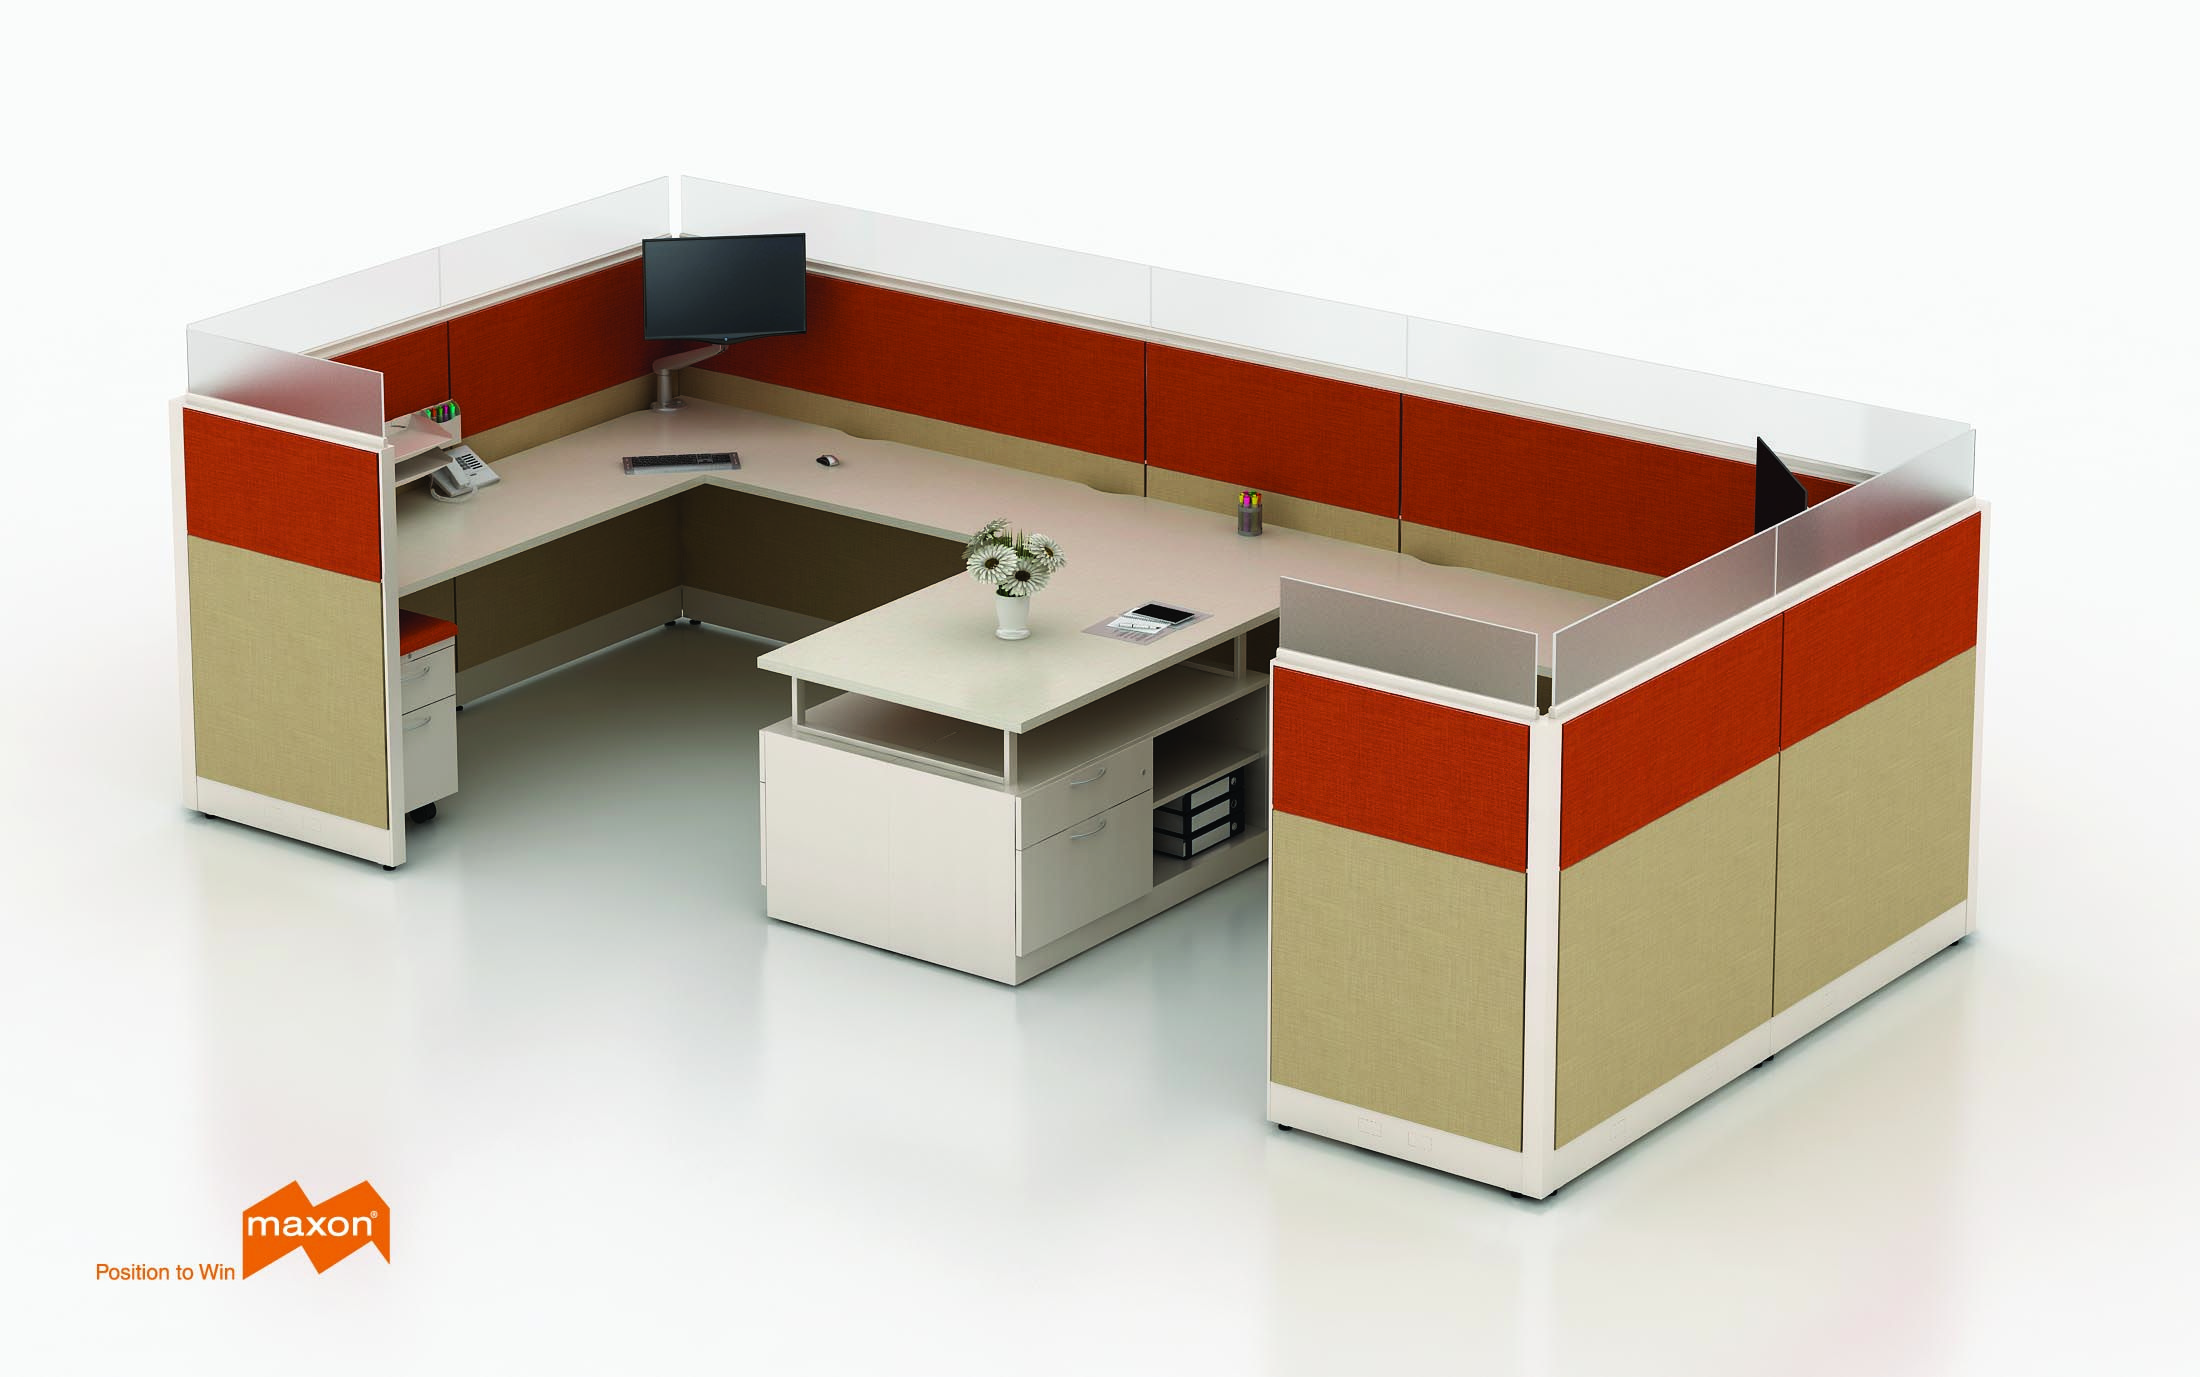 Give the office environment the best of both worlds